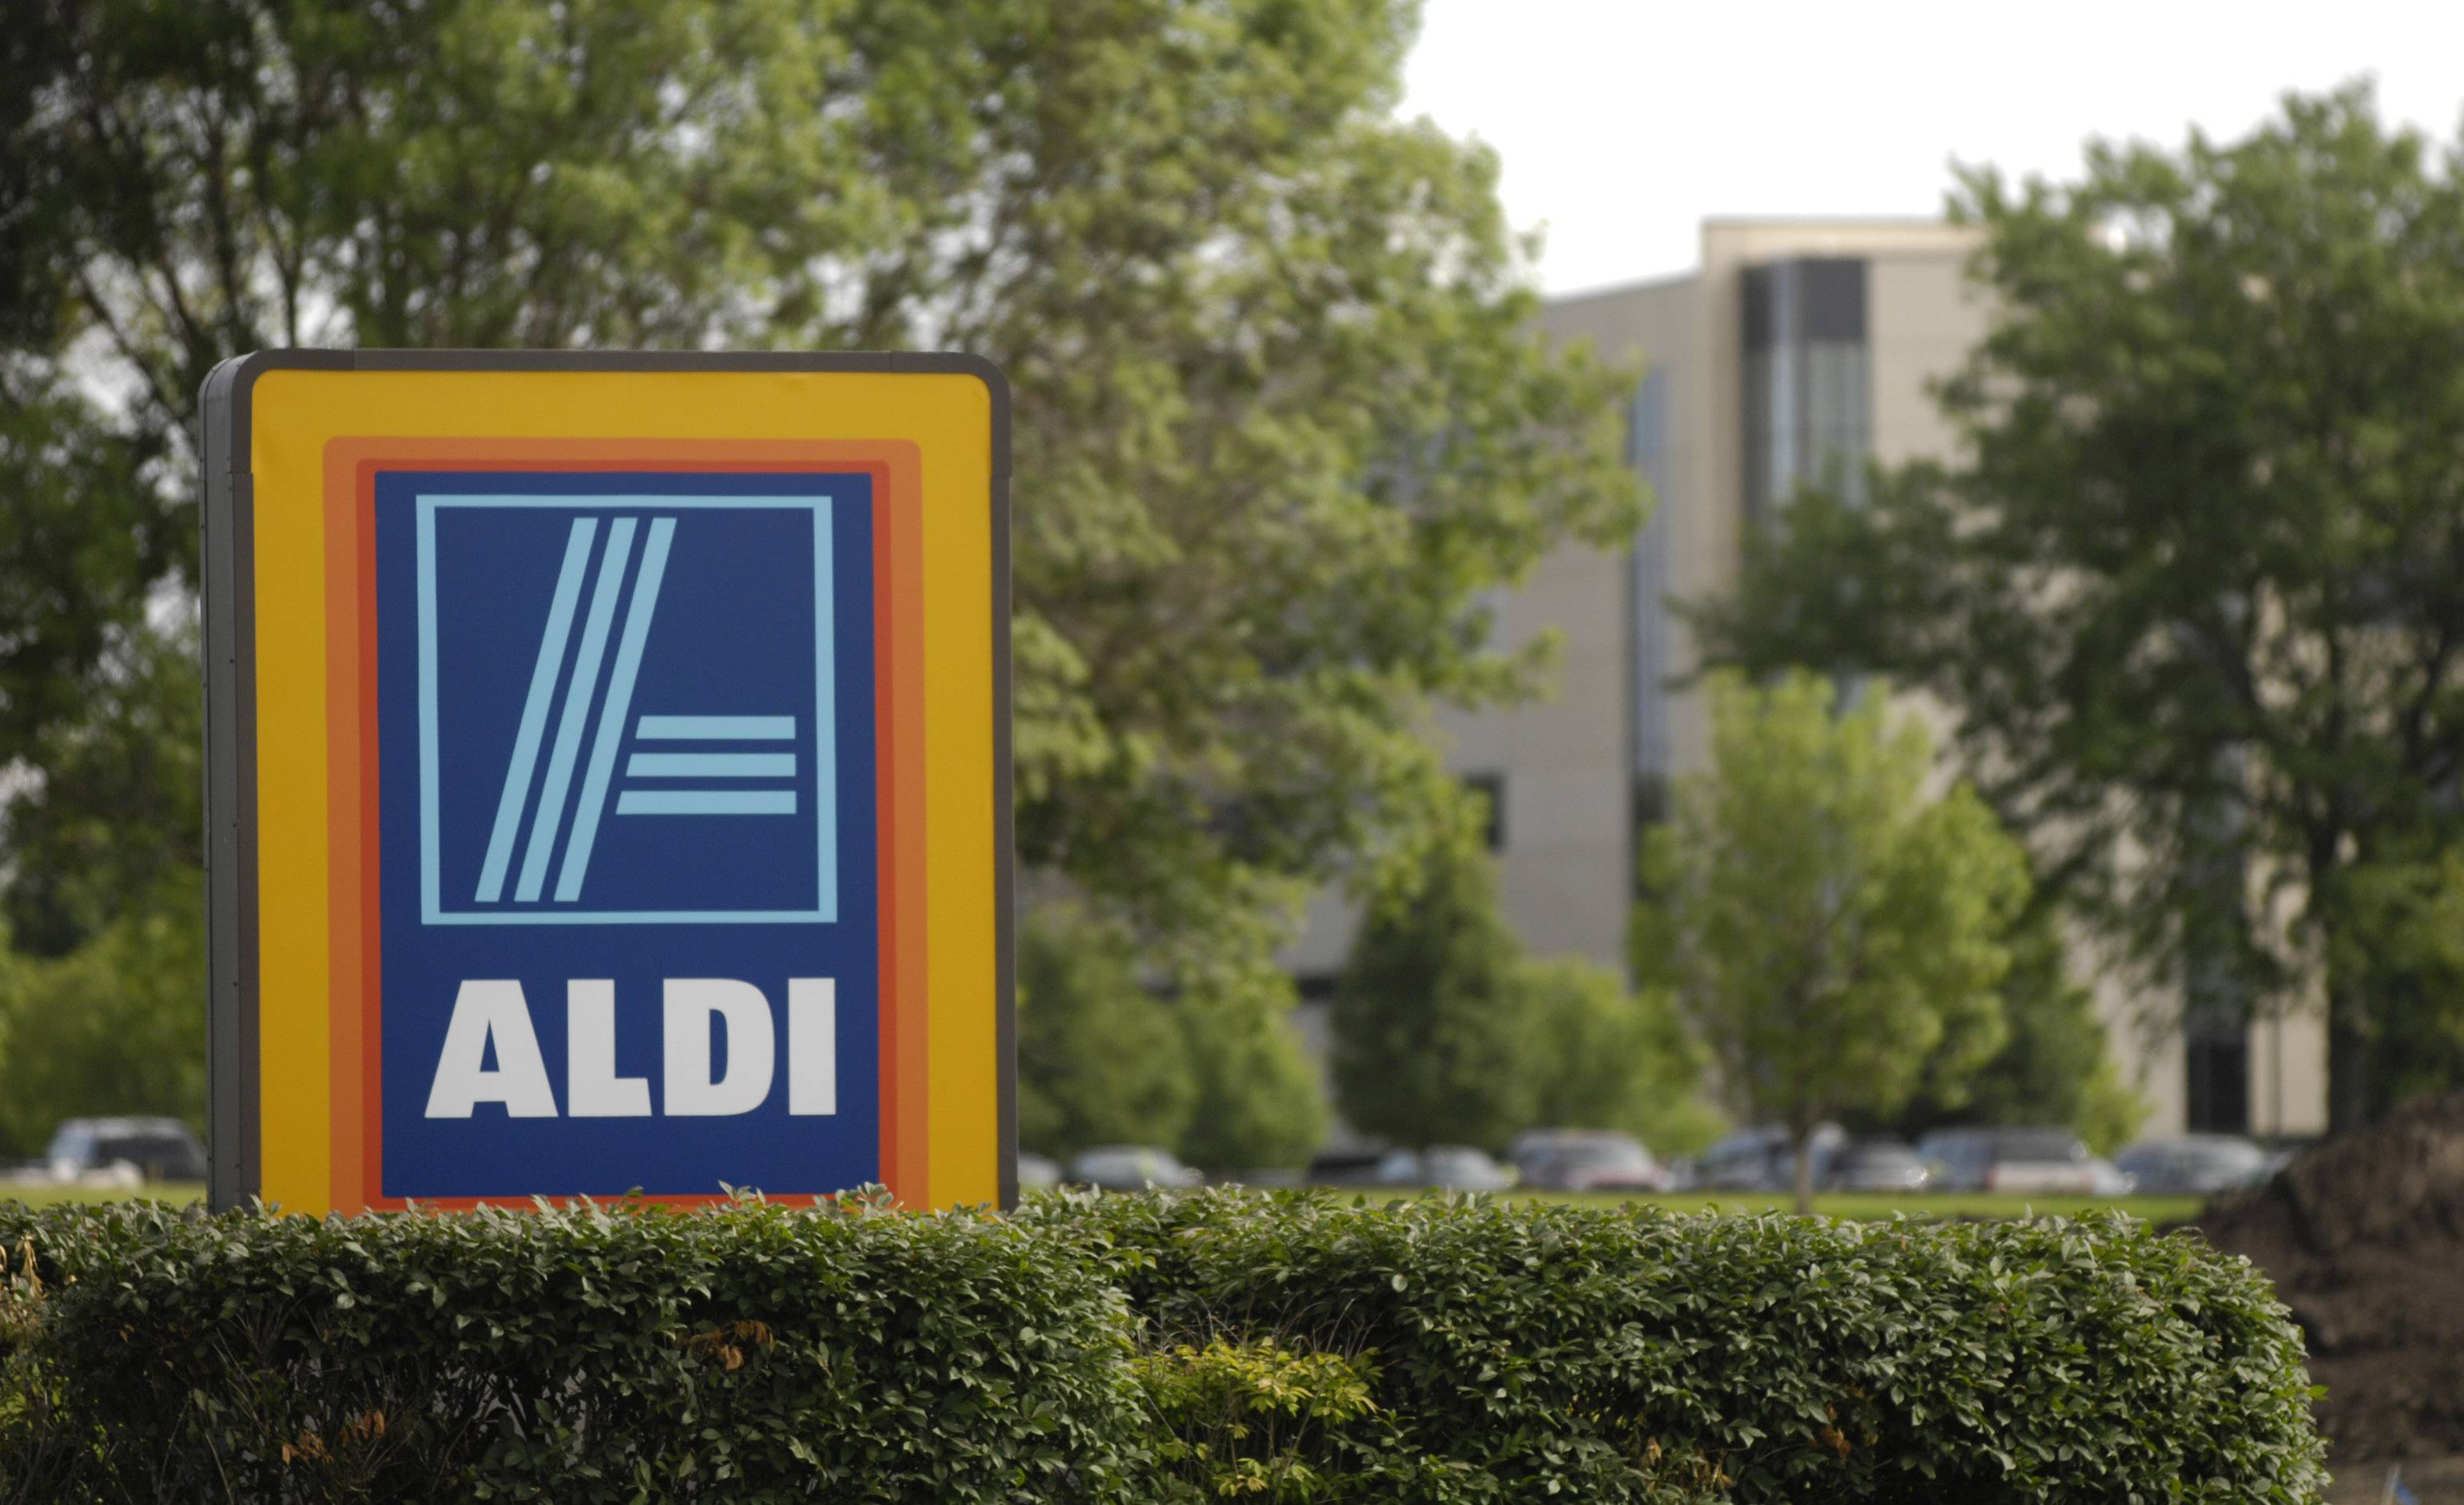 Aldi, with hits U.S. headquarters in Batavia, is opening three local renovated stores this week.